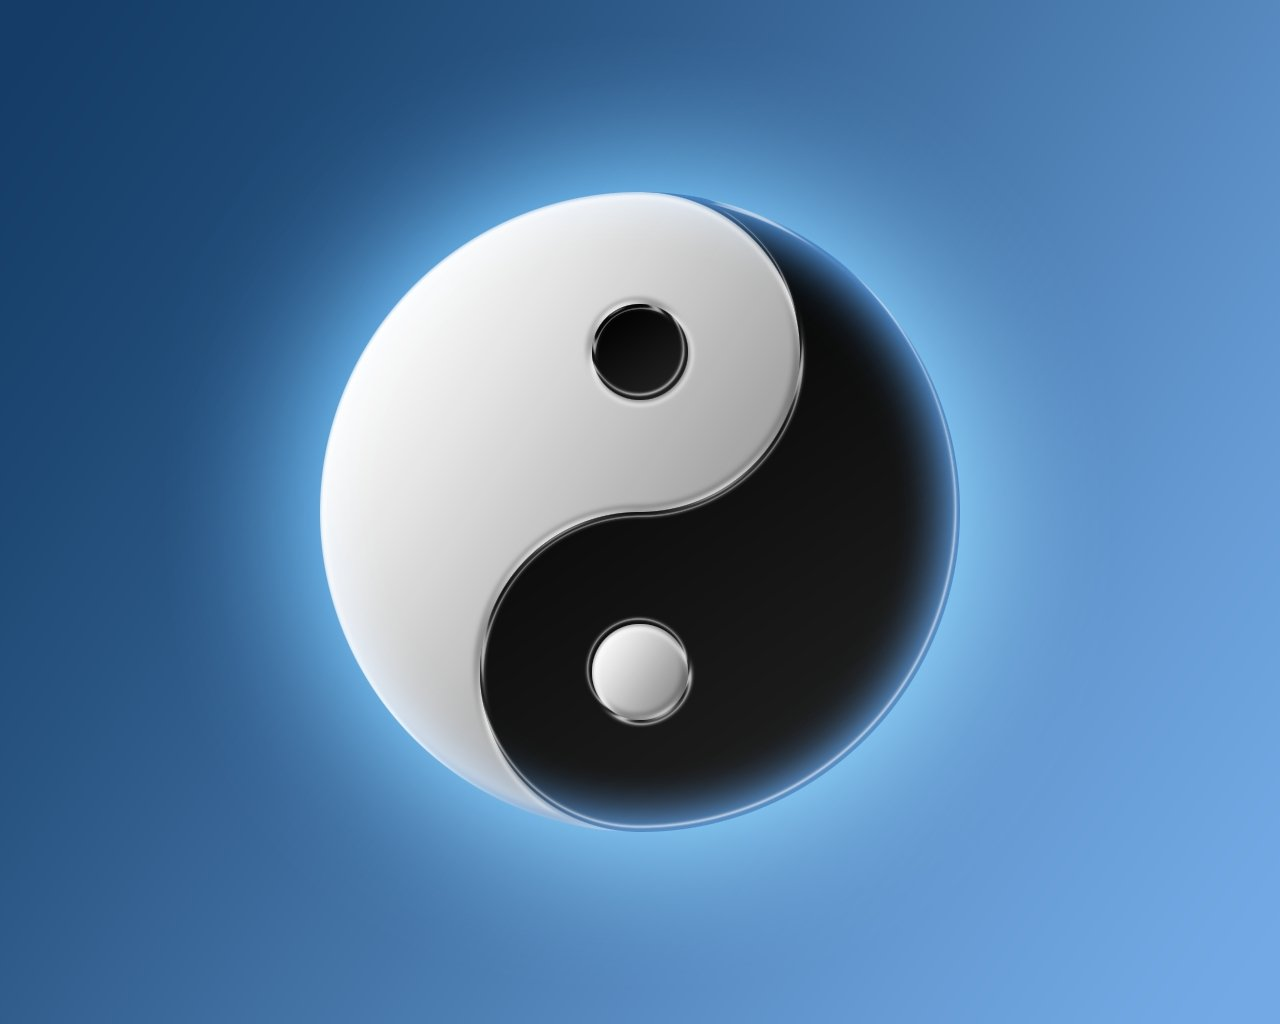 HD-Ying-Yang-1920×1080-Yin-Yang-Adorable-wallpaper-wpc9005977